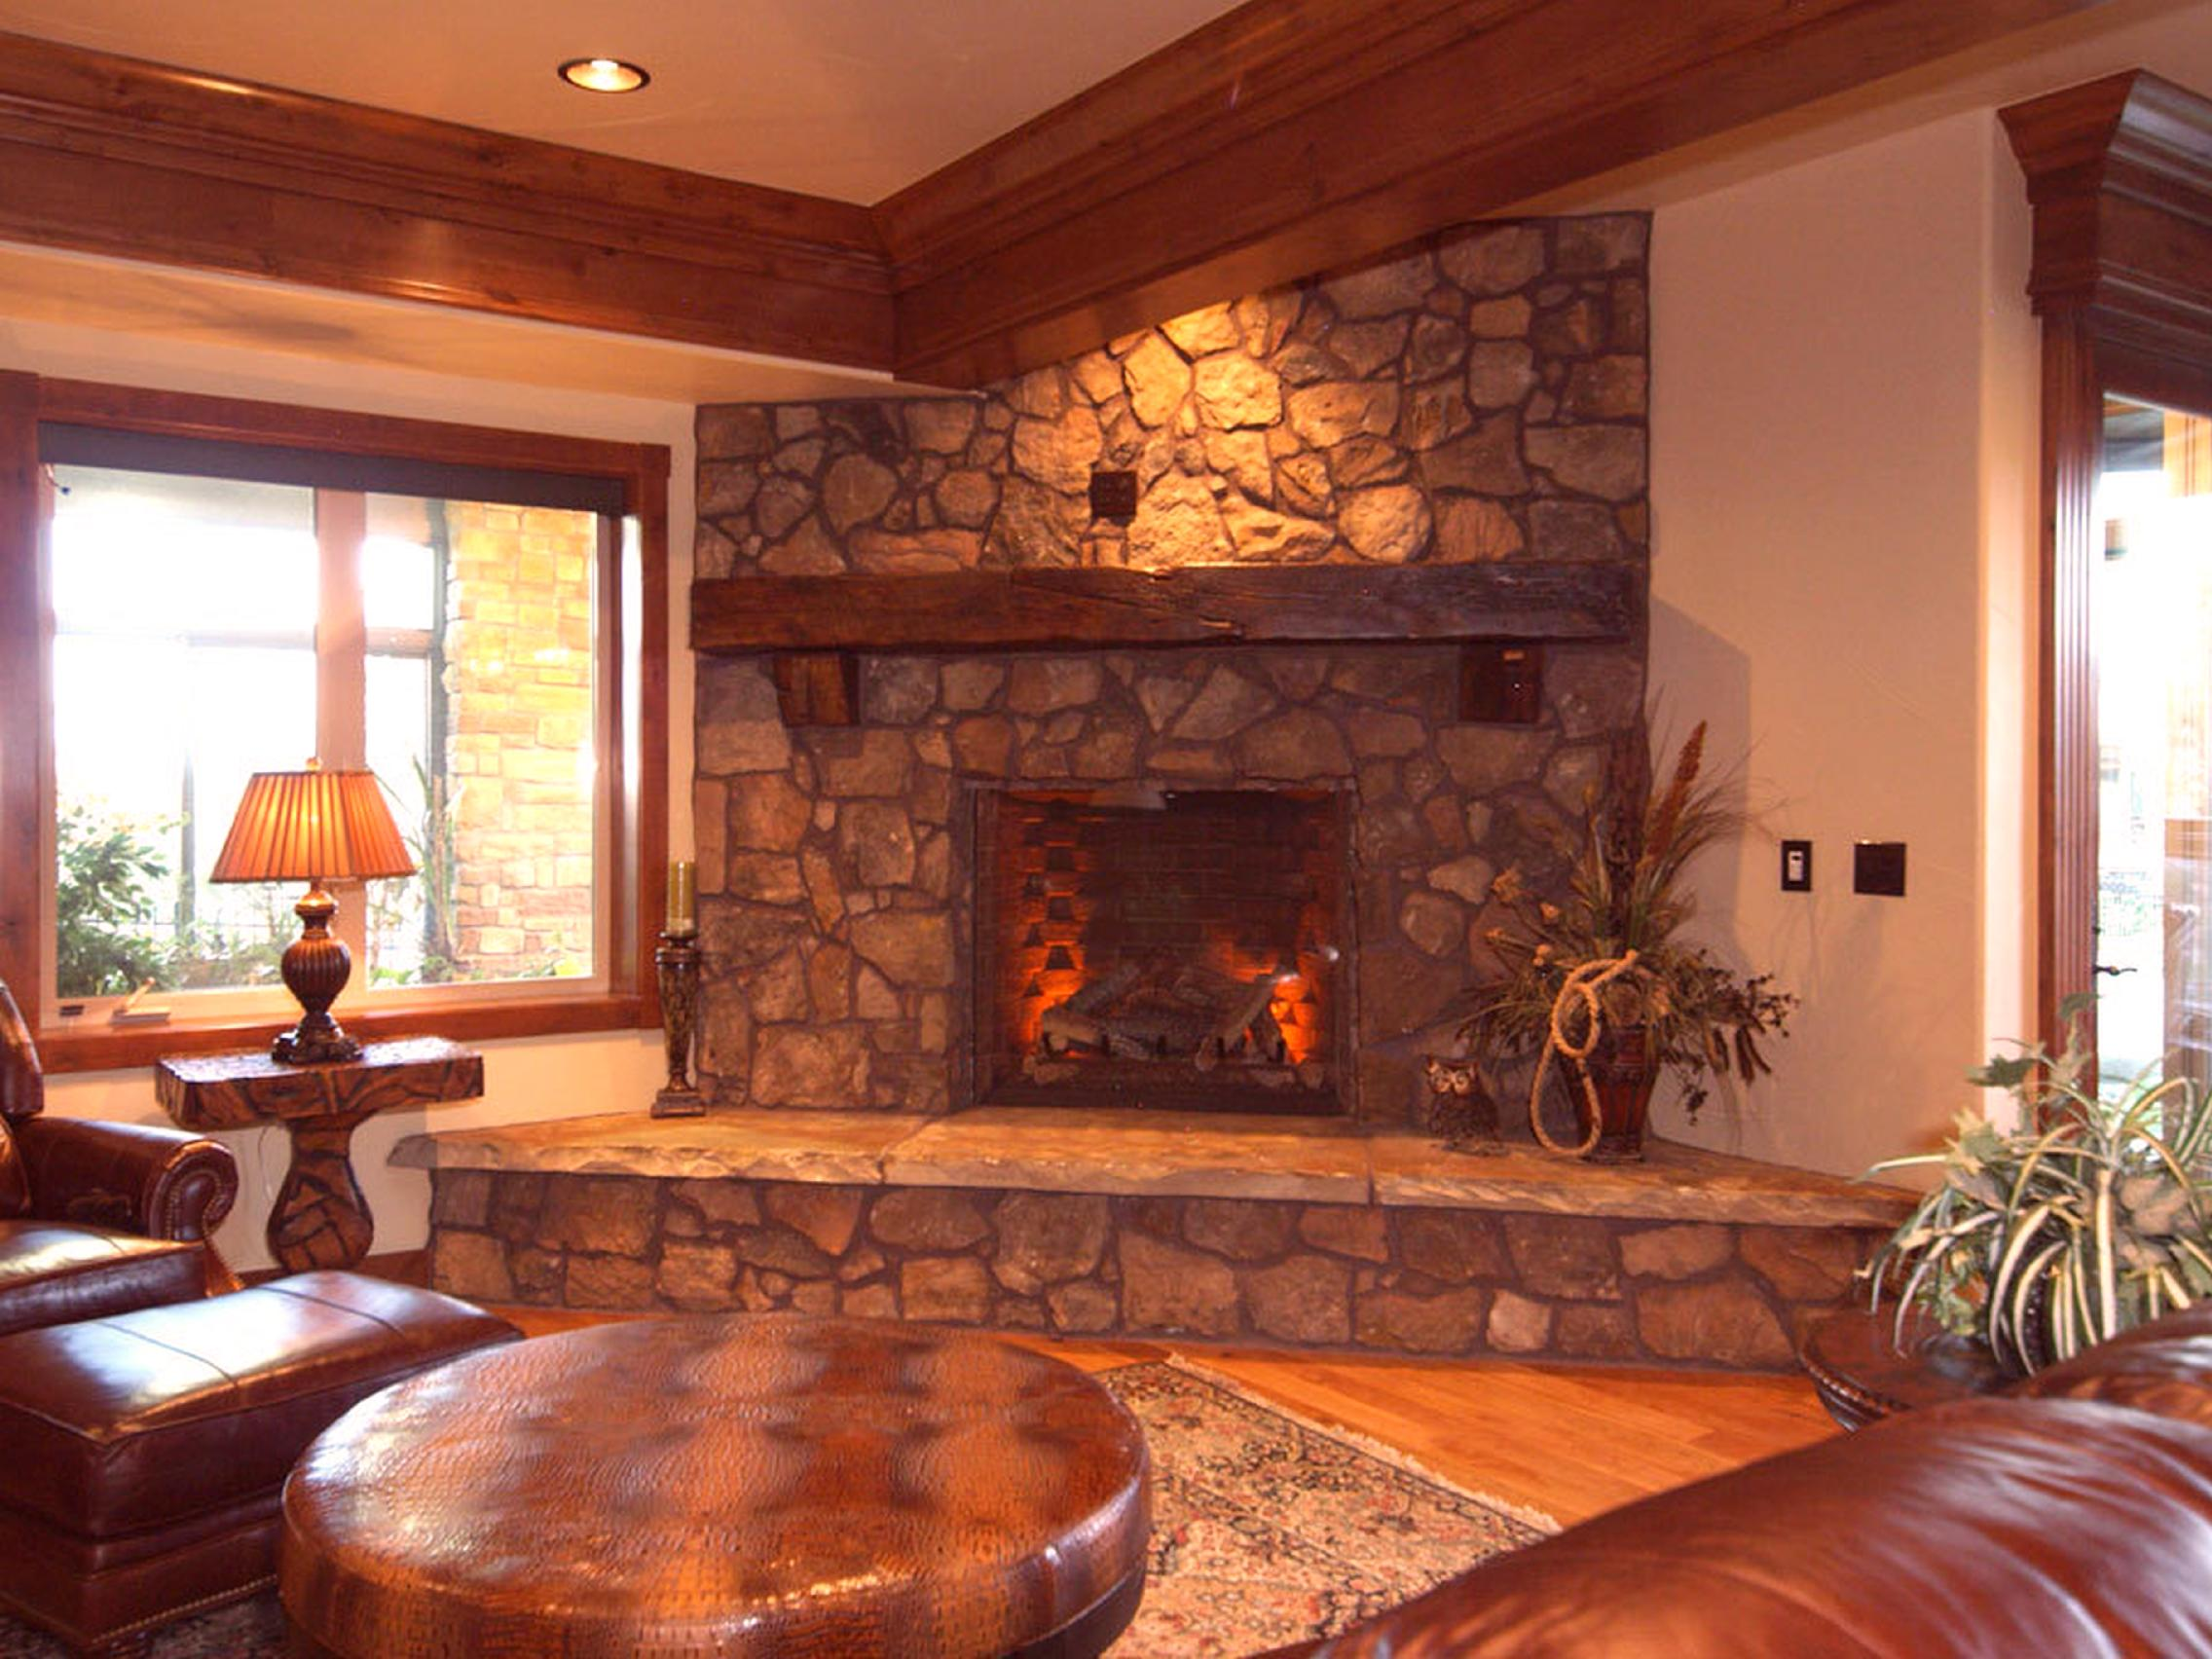 Corner fireplaces discount corner fireplace - Indoor Stone Fireplace Ideas Forwardcapitalus Corner Fireplaces